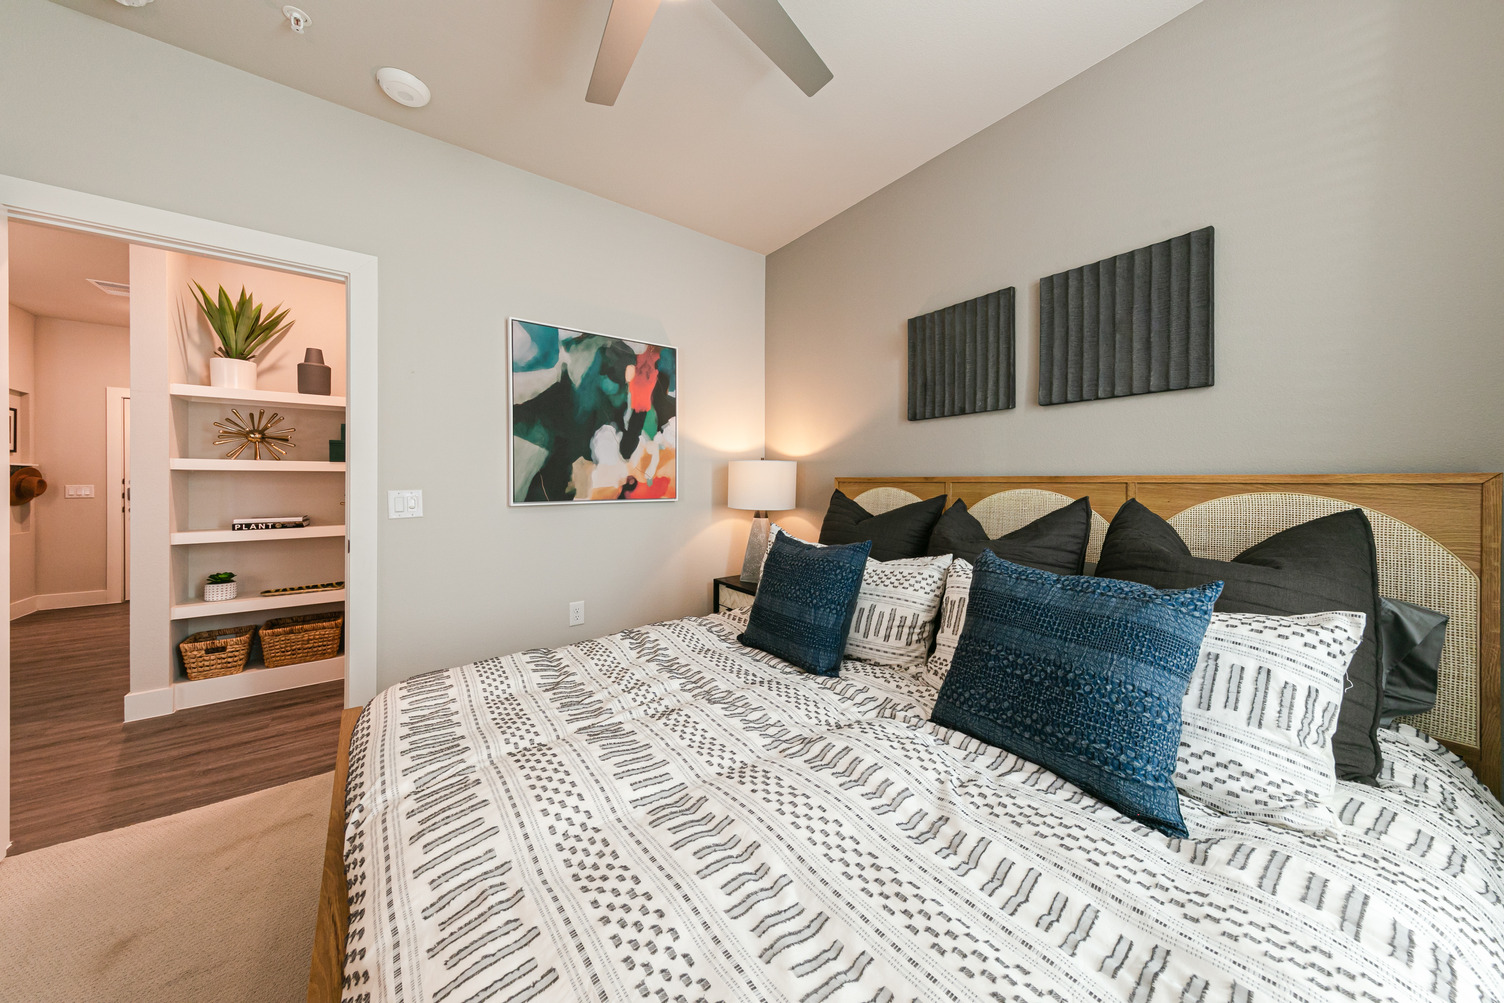 Alternate view of model apartment bedroom with carpeting, ceiling fan, queen bed, and large window with blinds